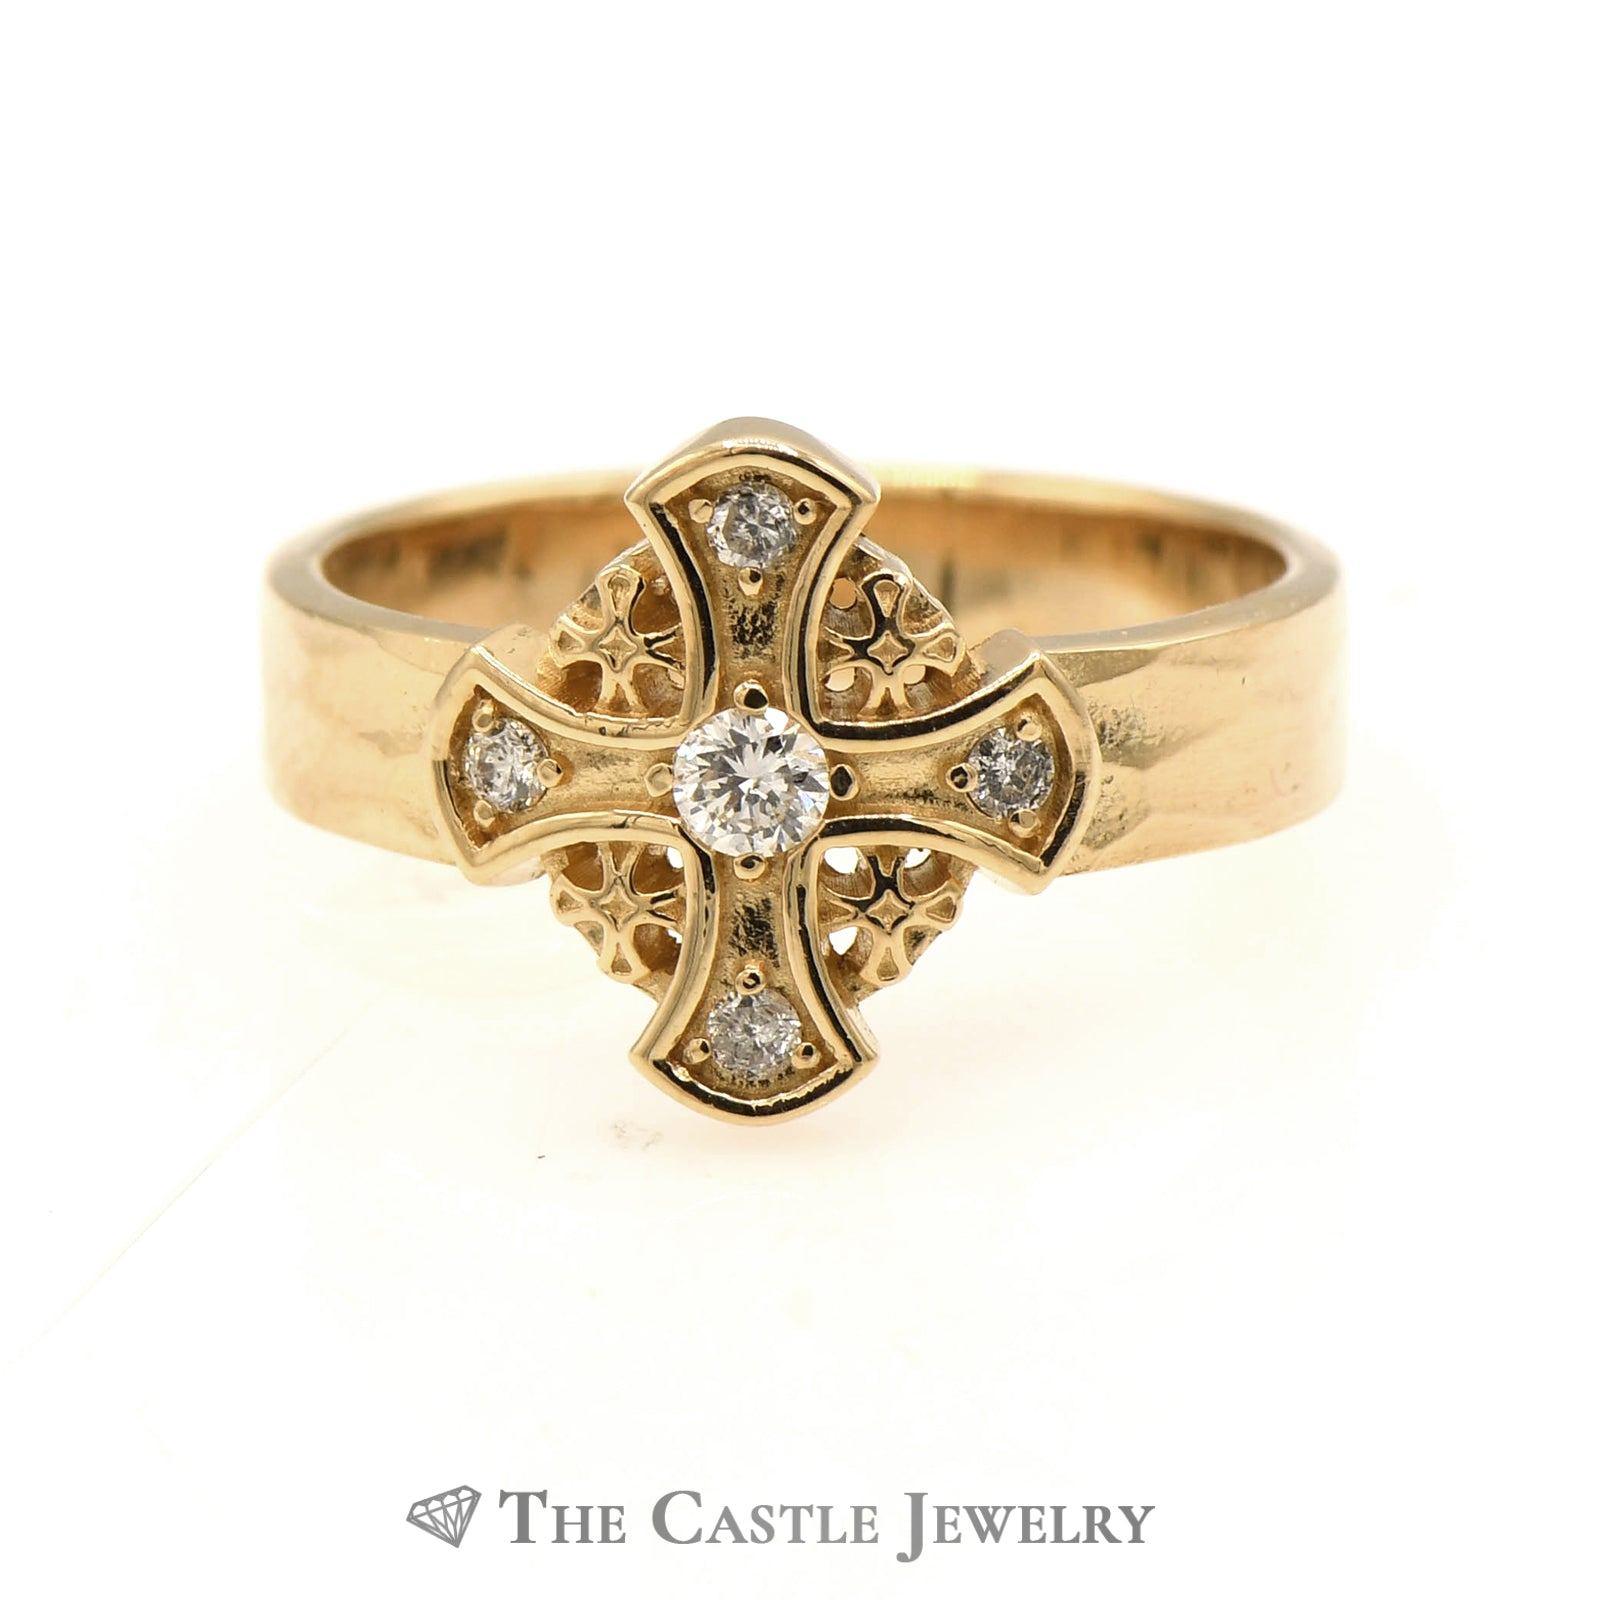 Gent's Five Fold Cross Ring 14KT Yellow Gold With .25 CTTW Diamonds